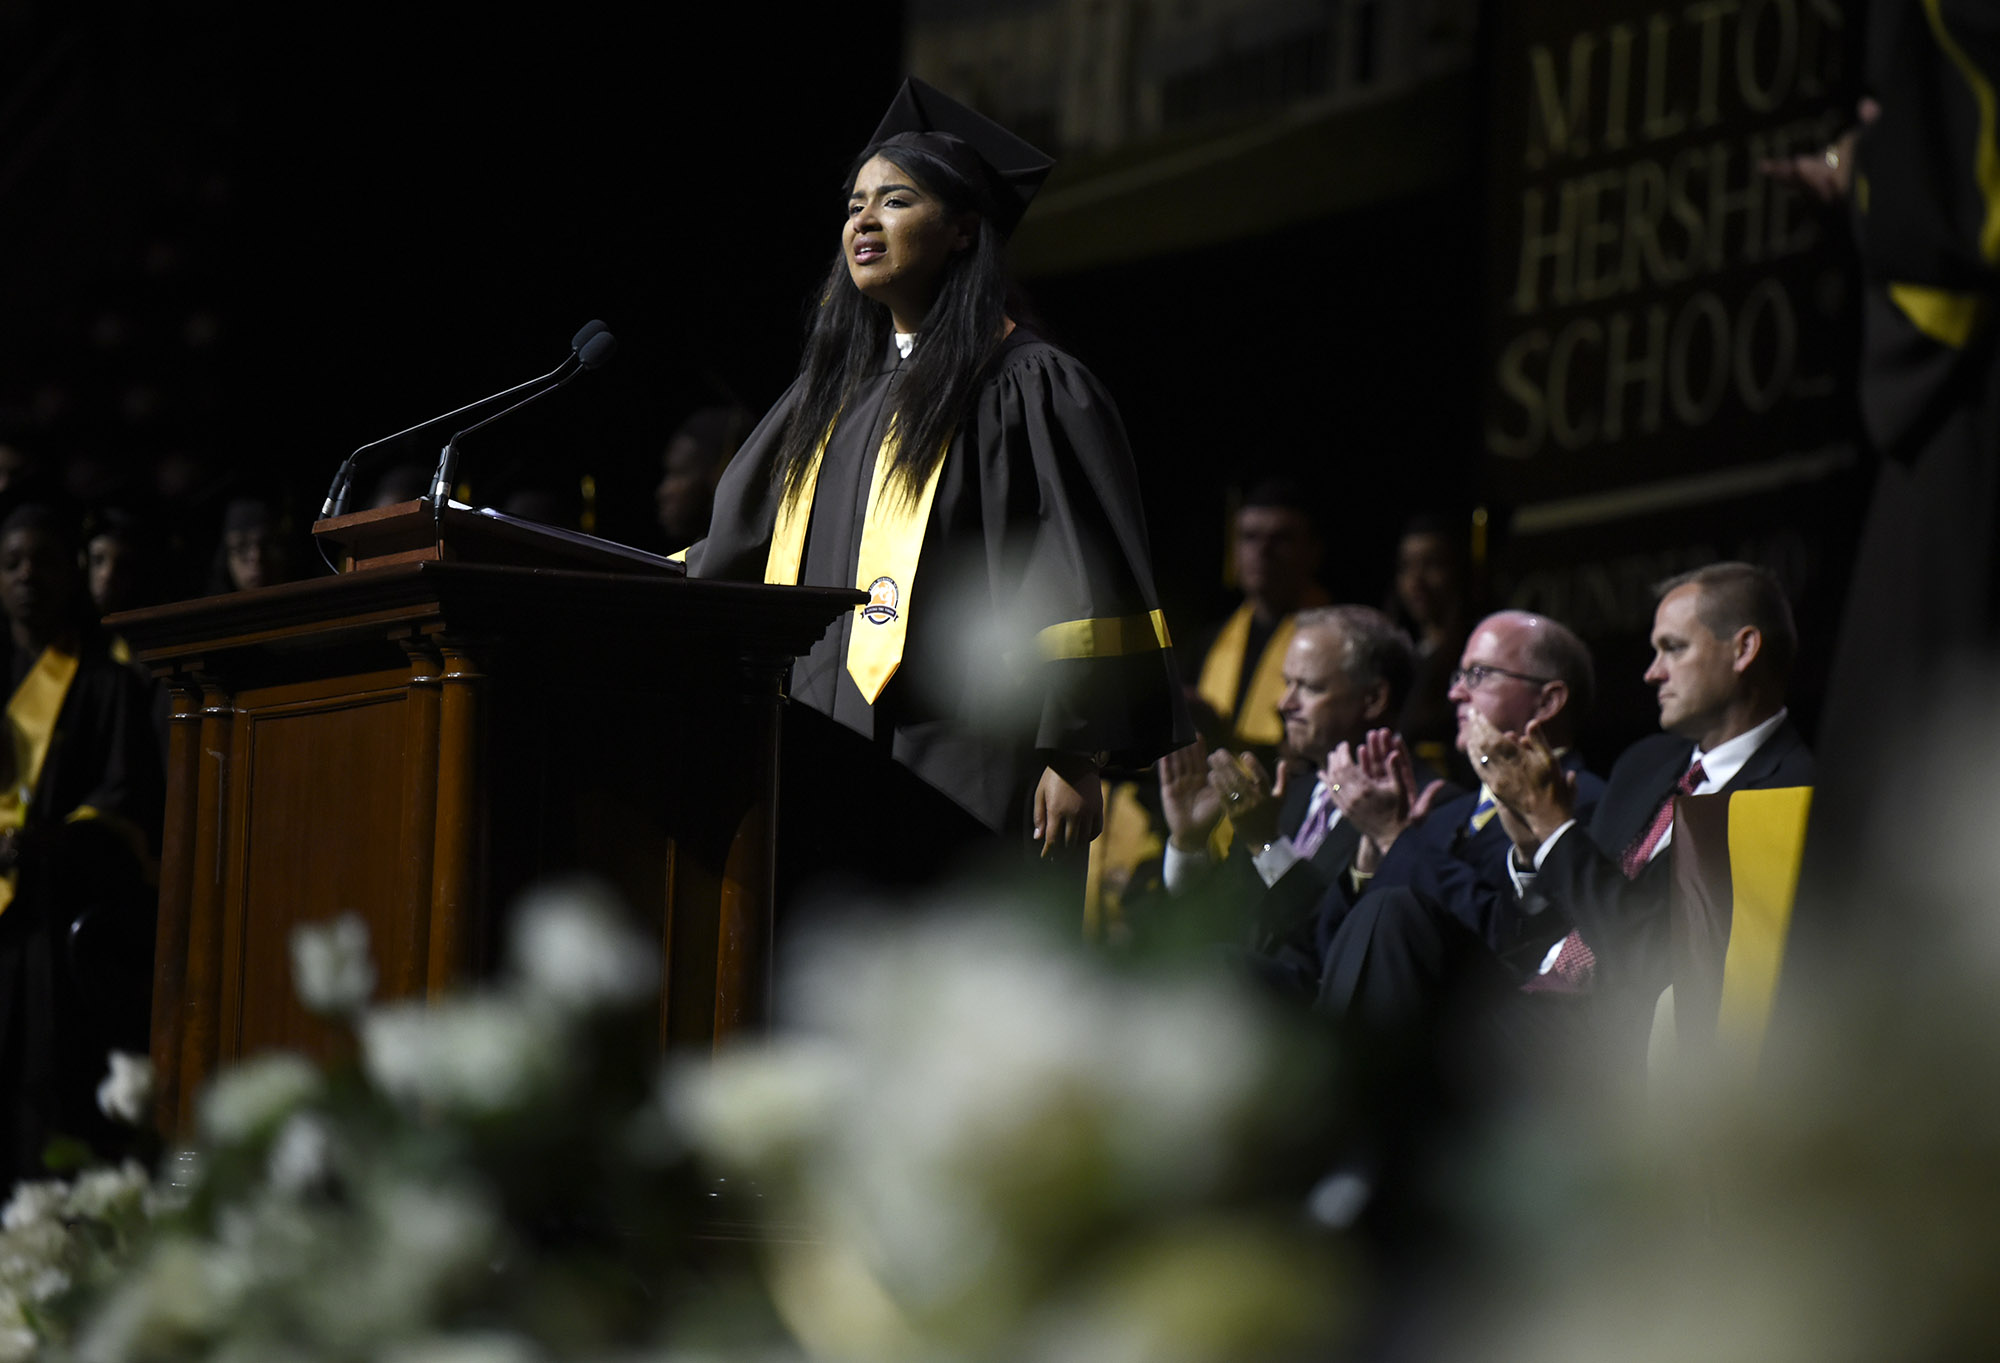 Felicity Torres delivers a heartfelt farewell address during Commencement